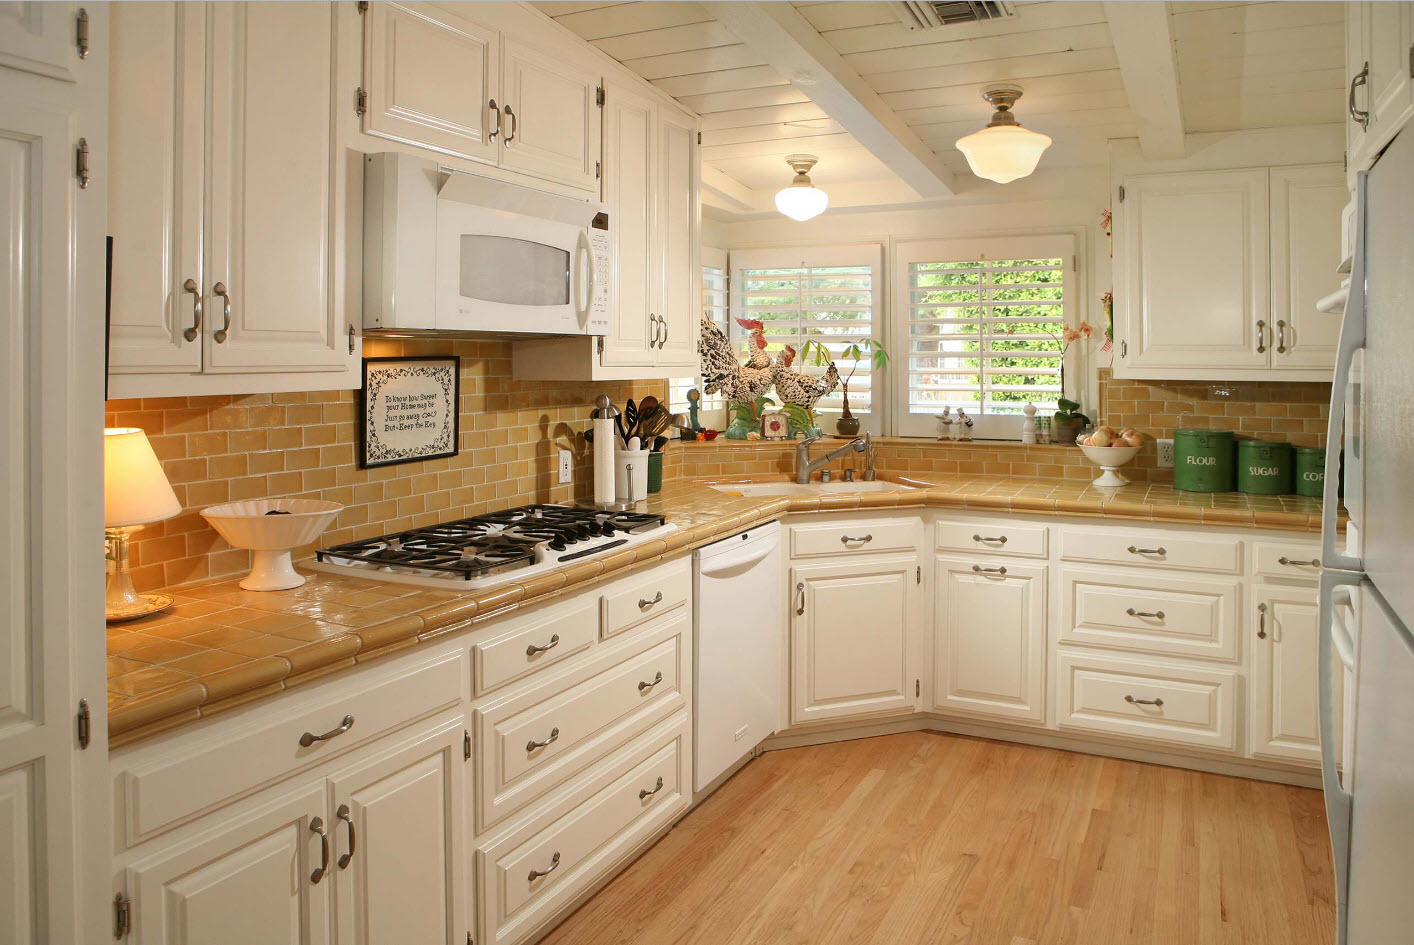 Angular Kitchen Layout Design Ideas 2017. Non-standard geometry requires special furniture